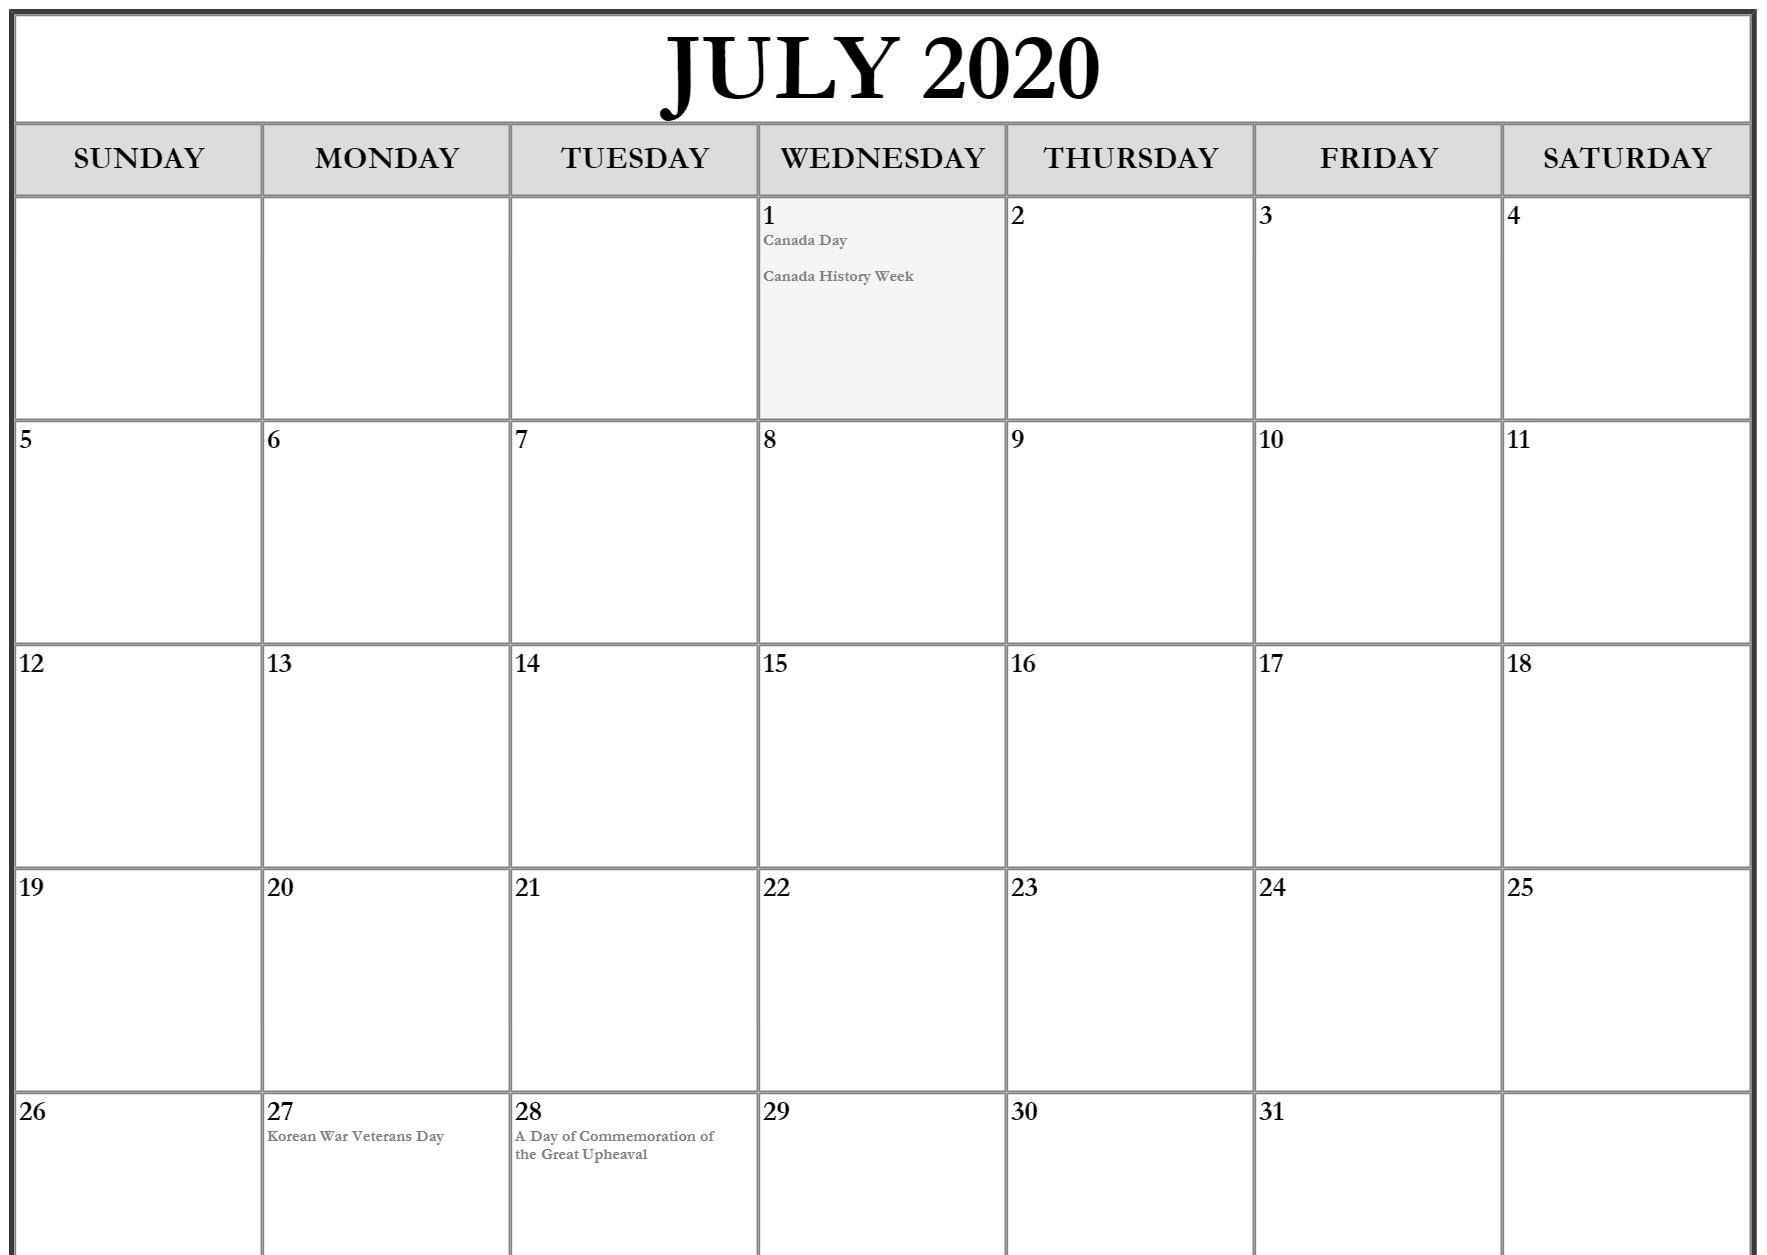 Free July Holidays 2020 Calendar Printable For Usa Uk Canada